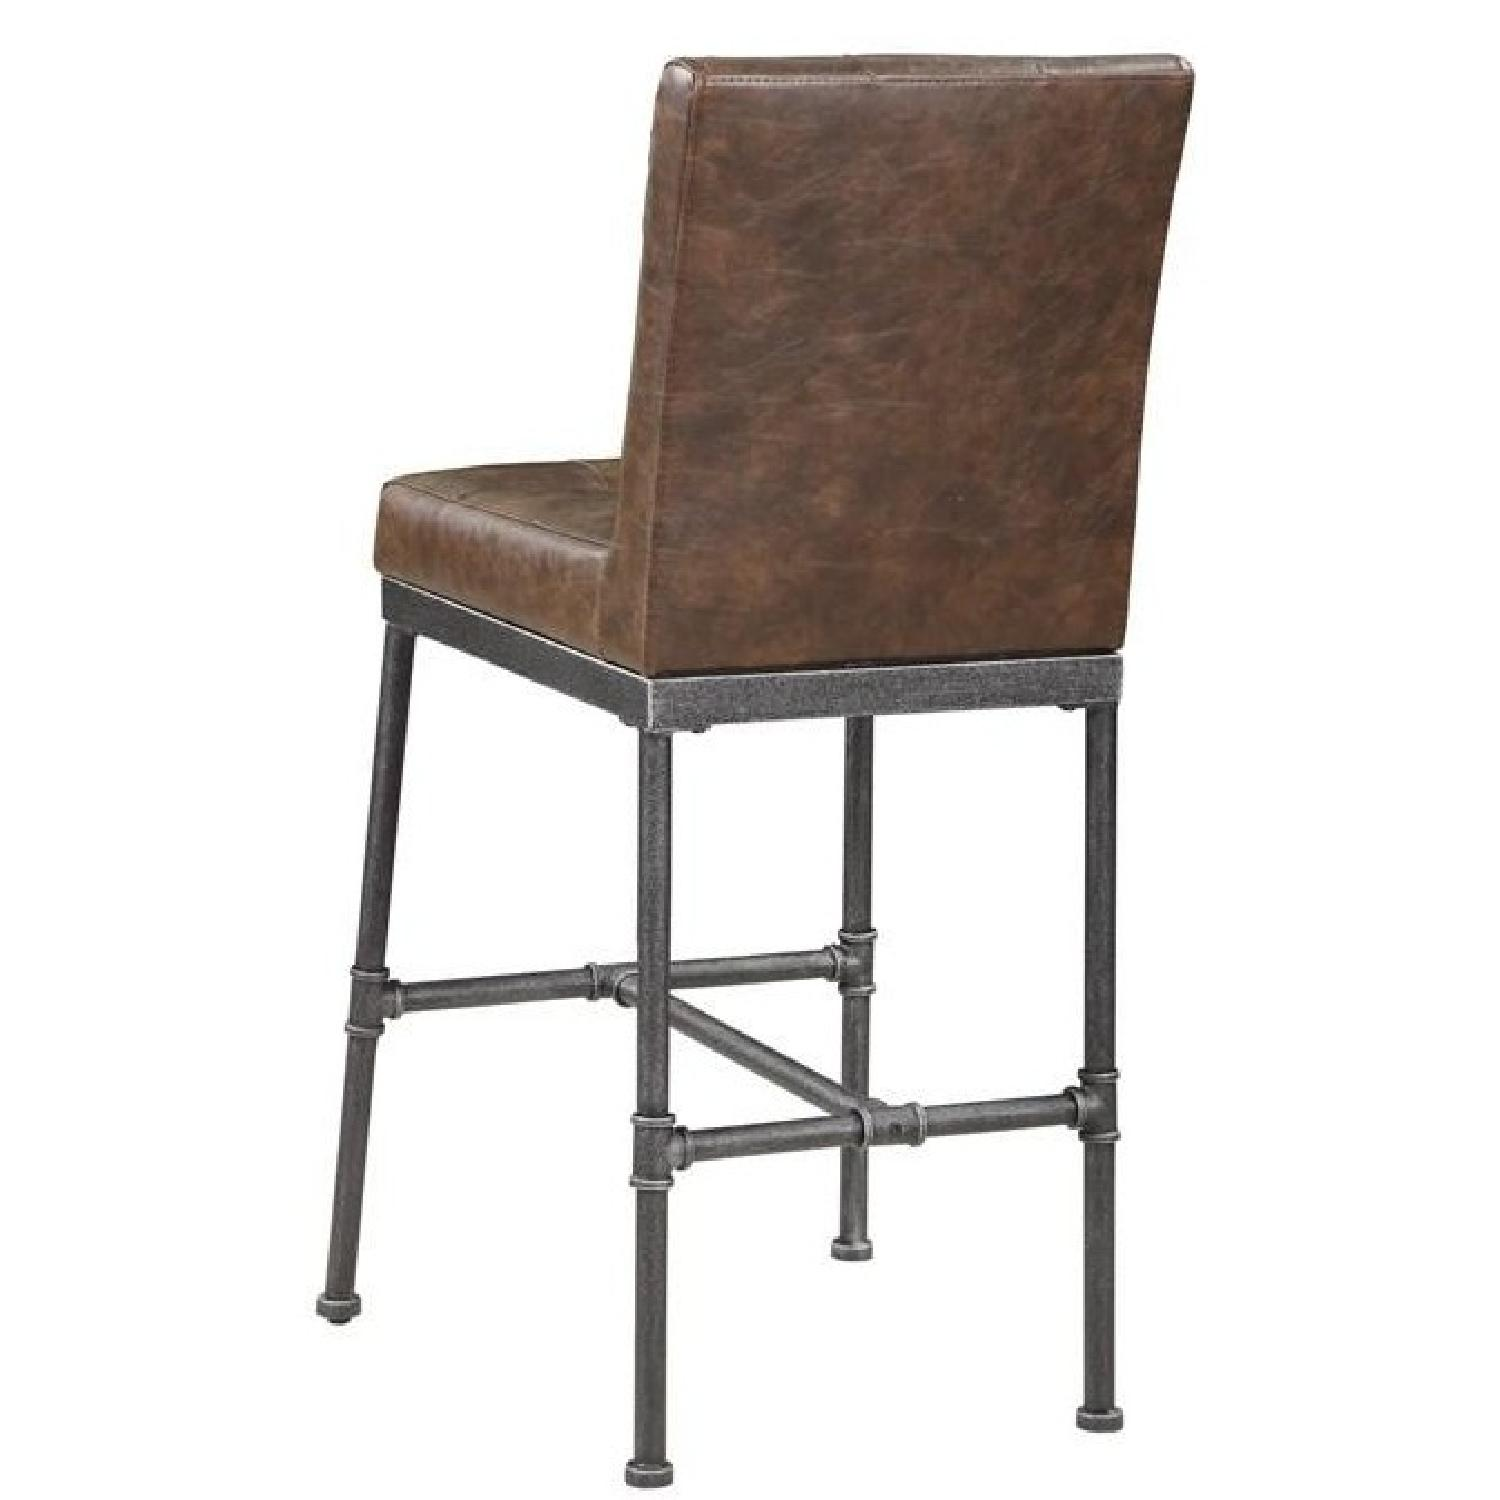 Bar Chair in Padded Brown Leatherette Upholstery - image-2